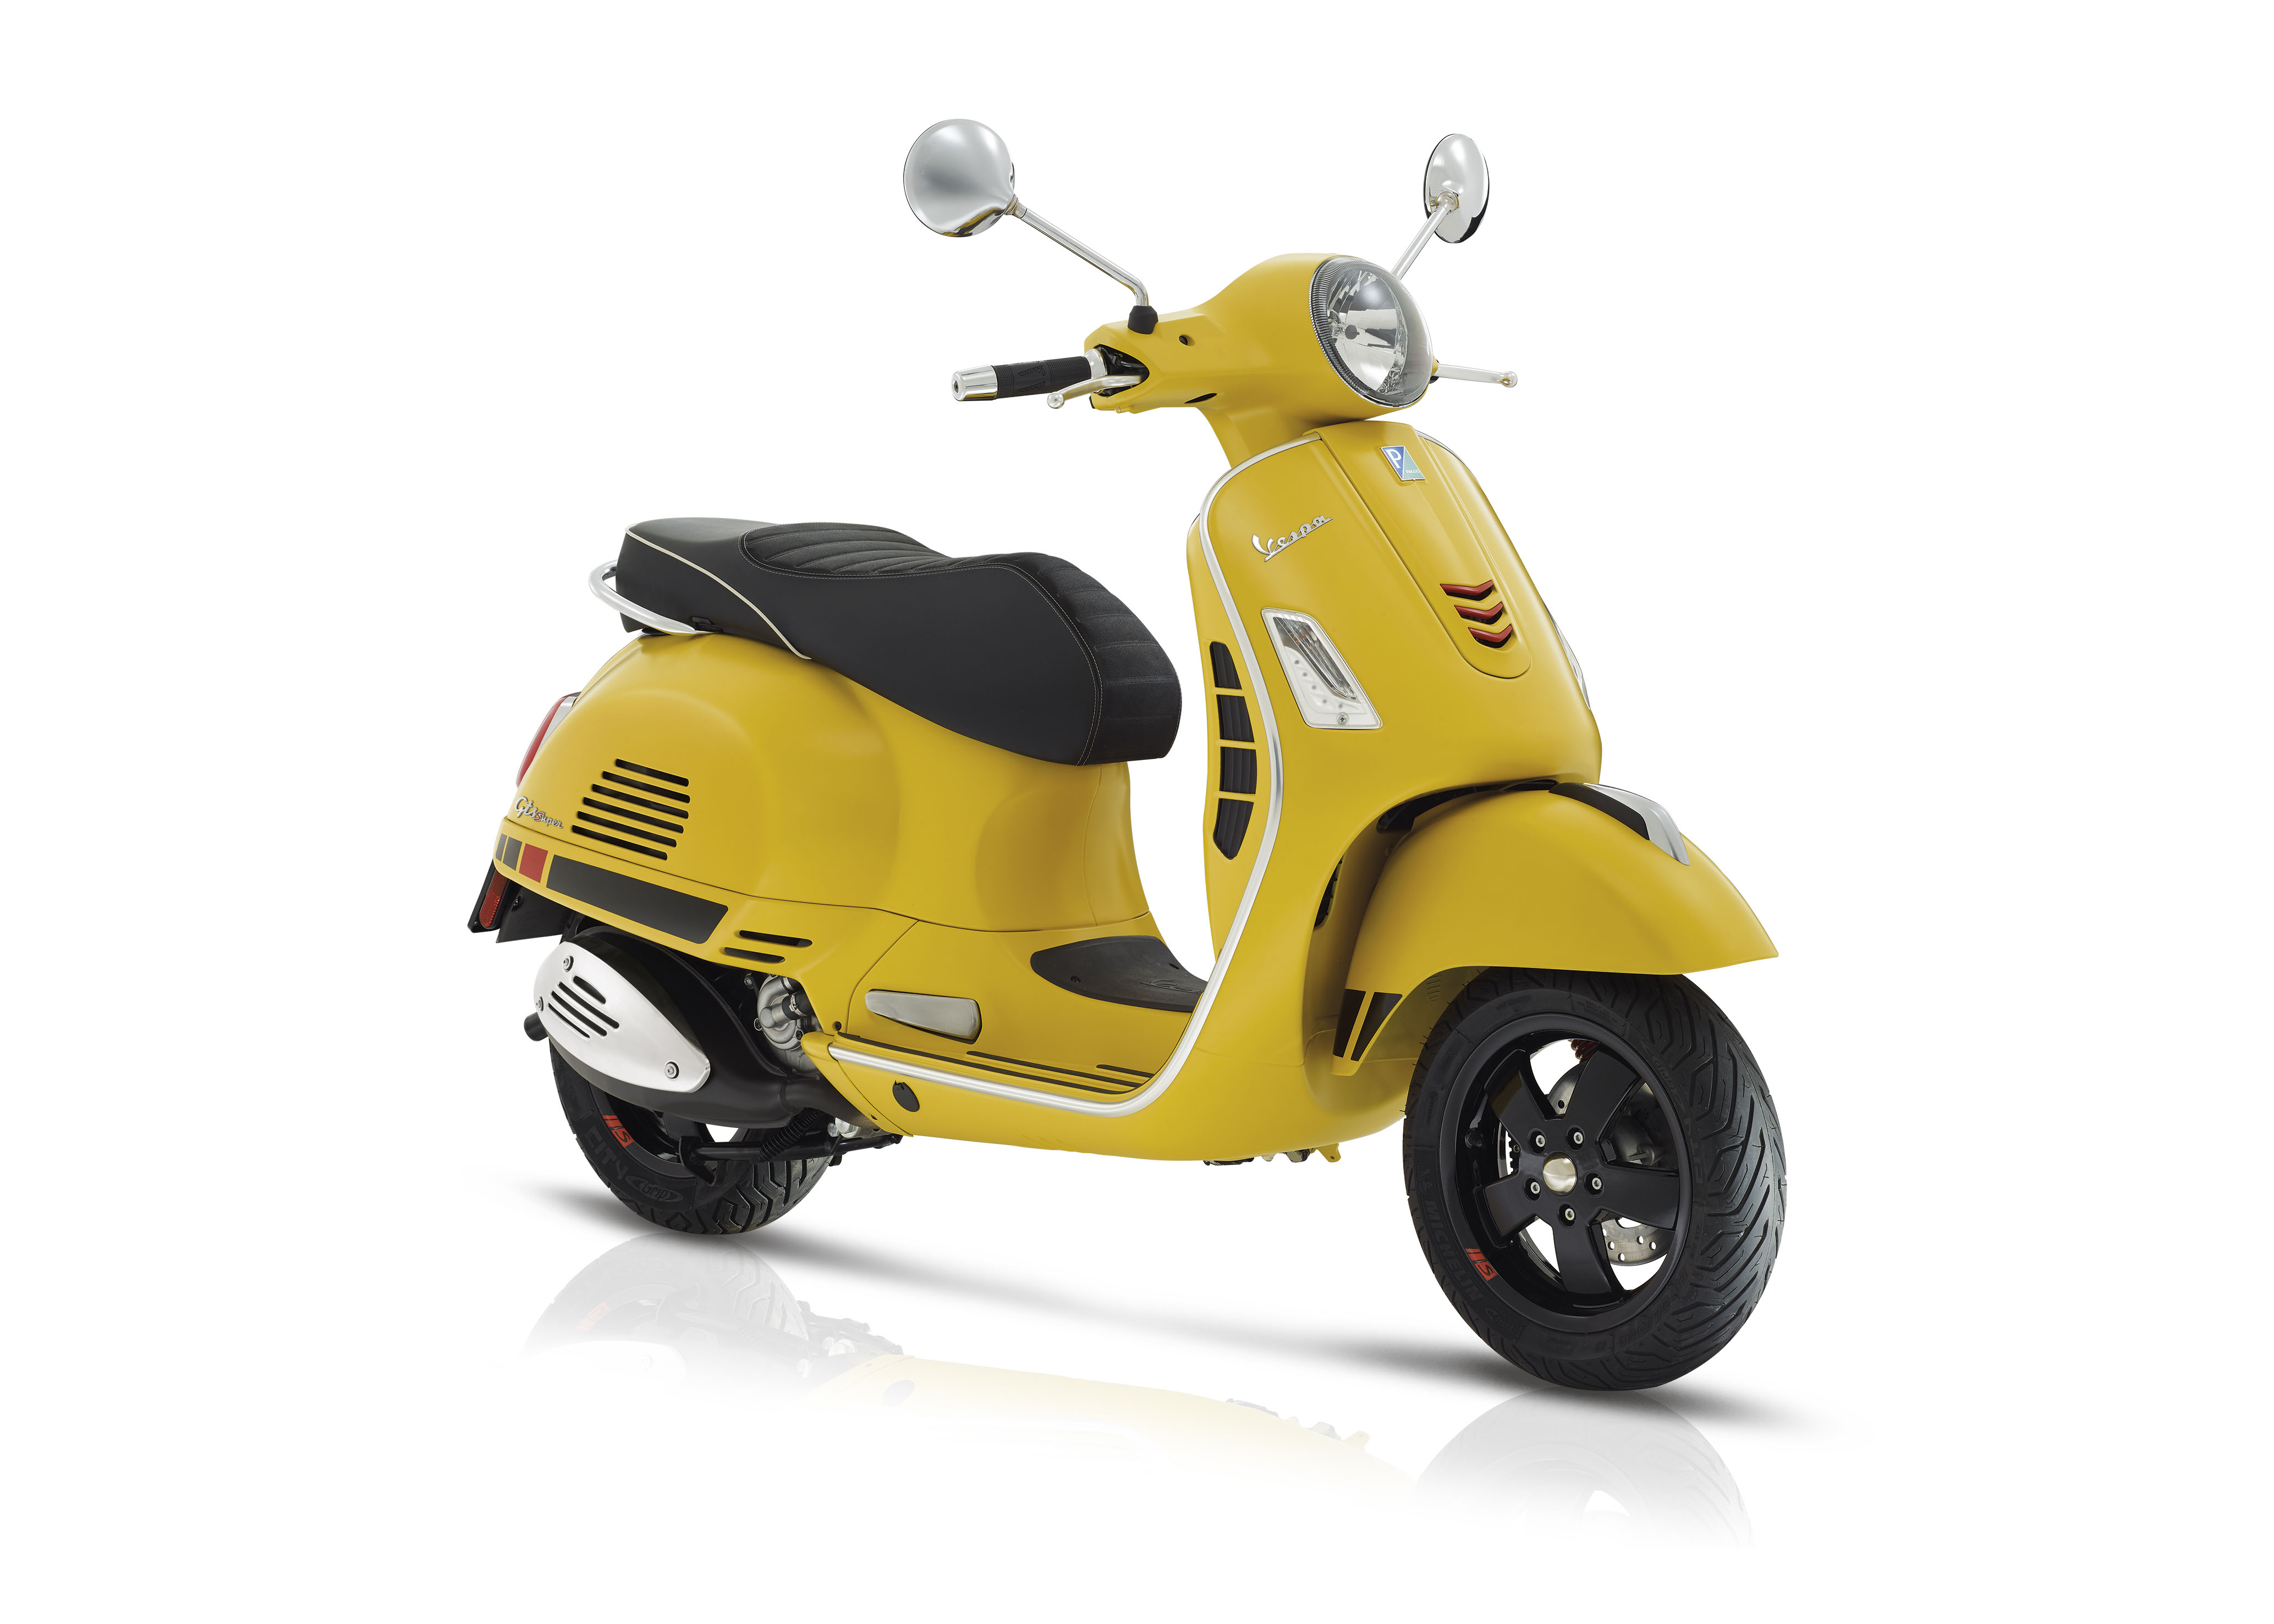 new 2018 vespa gts super sport 300 scooters in columbus oh. Black Bedroom Furniture Sets. Home Design Ideas